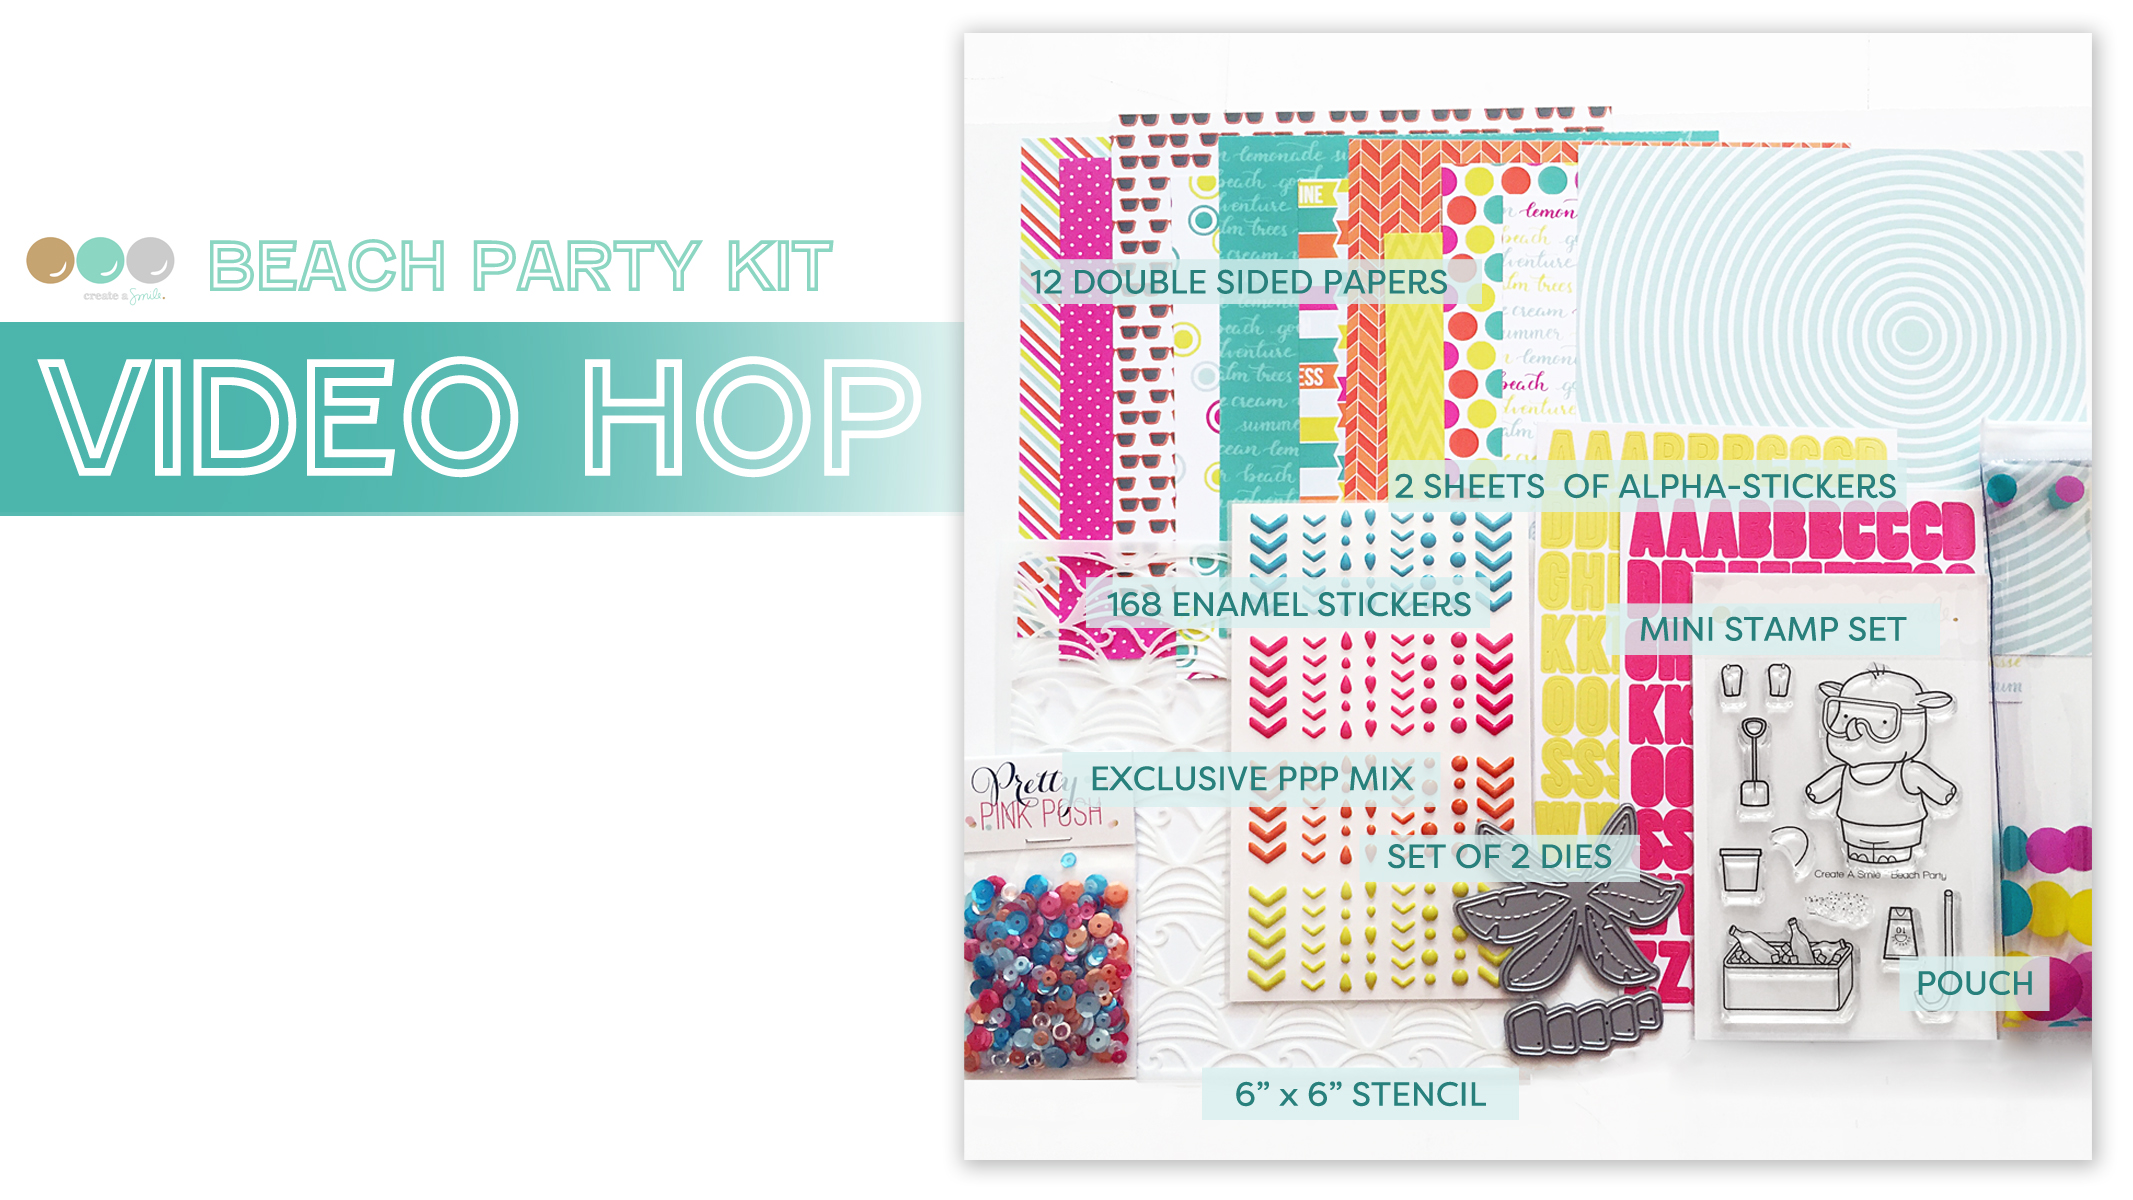 Beach Party Kit Video Hop Intro-graphic